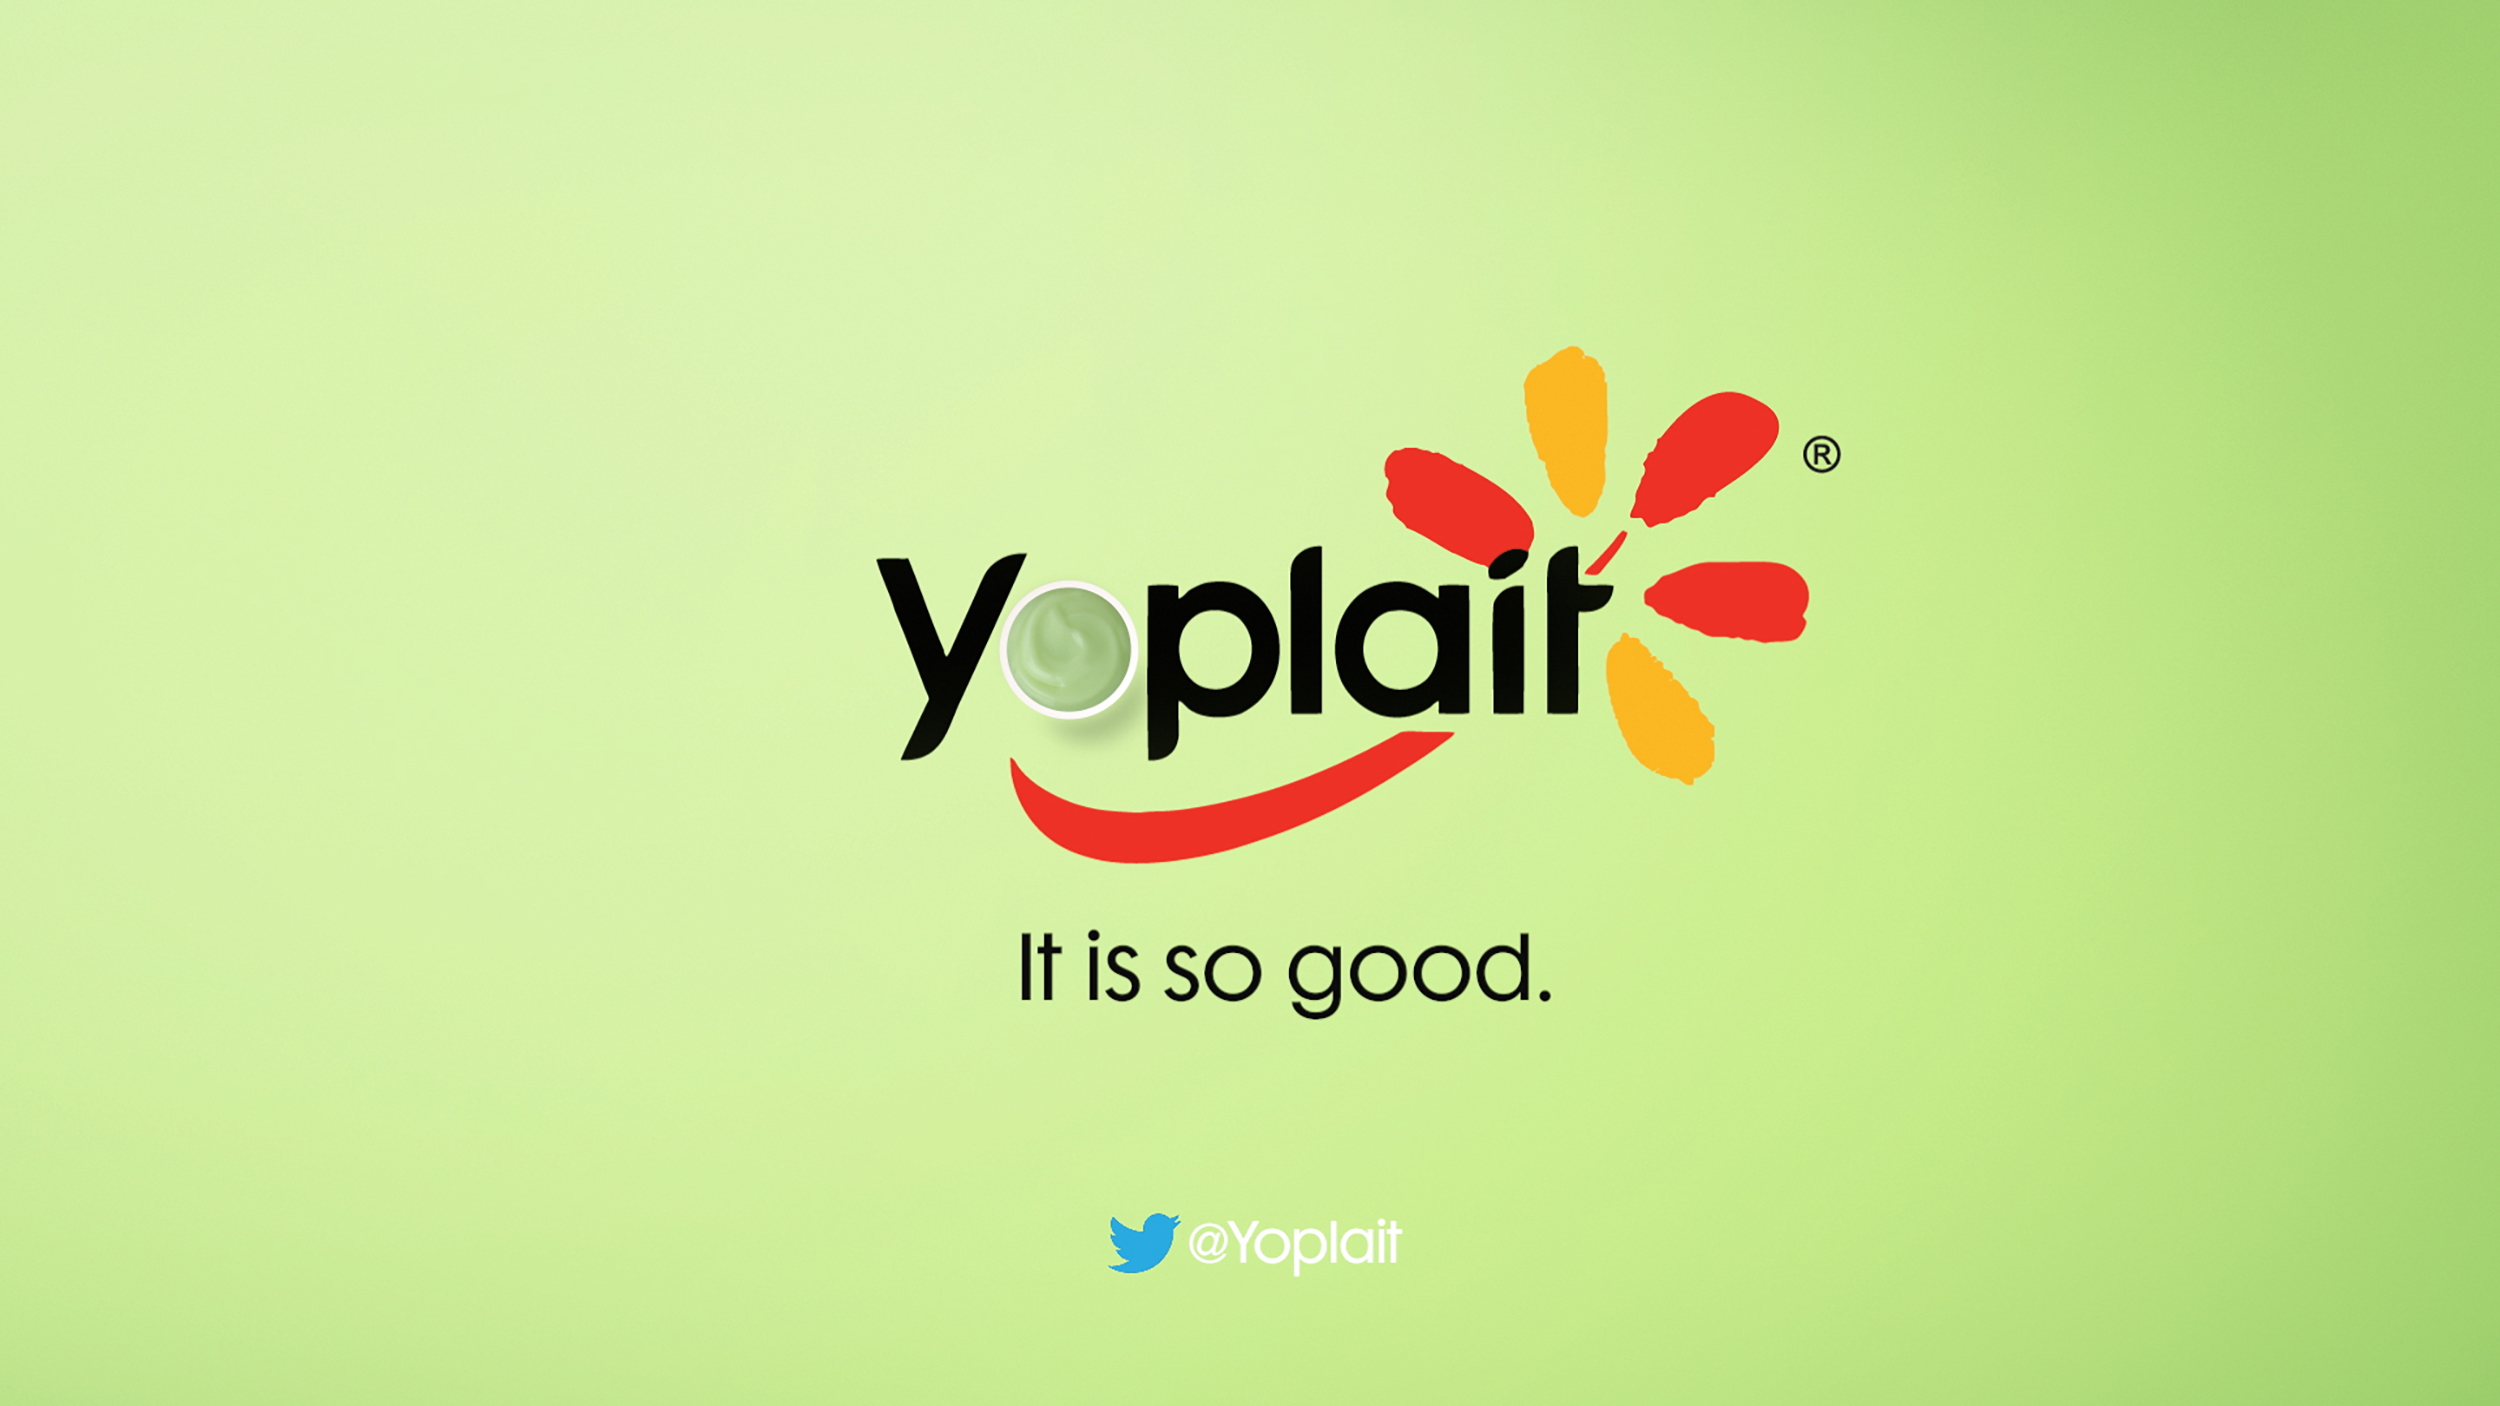 Yoplait_Blackberry_Unc8_0614_00406.jpg